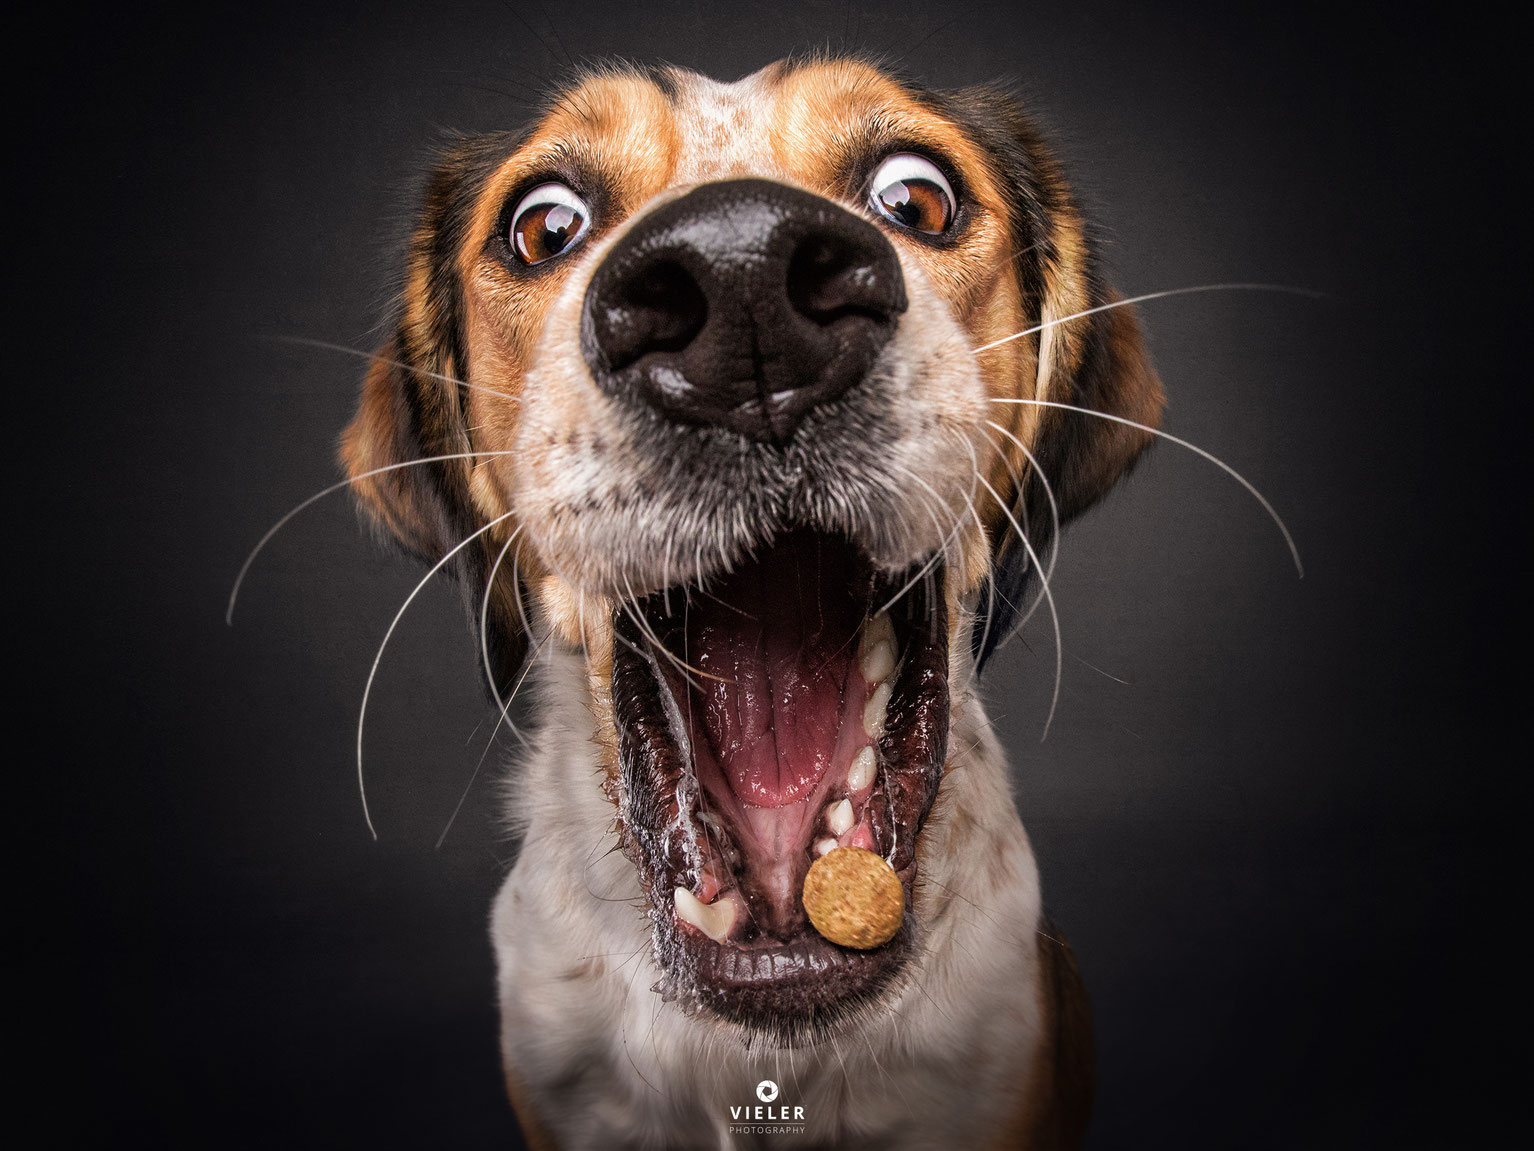 Download These Adorable Christian Vieler Dog Wallpapers For Your Iphone Applemagazine